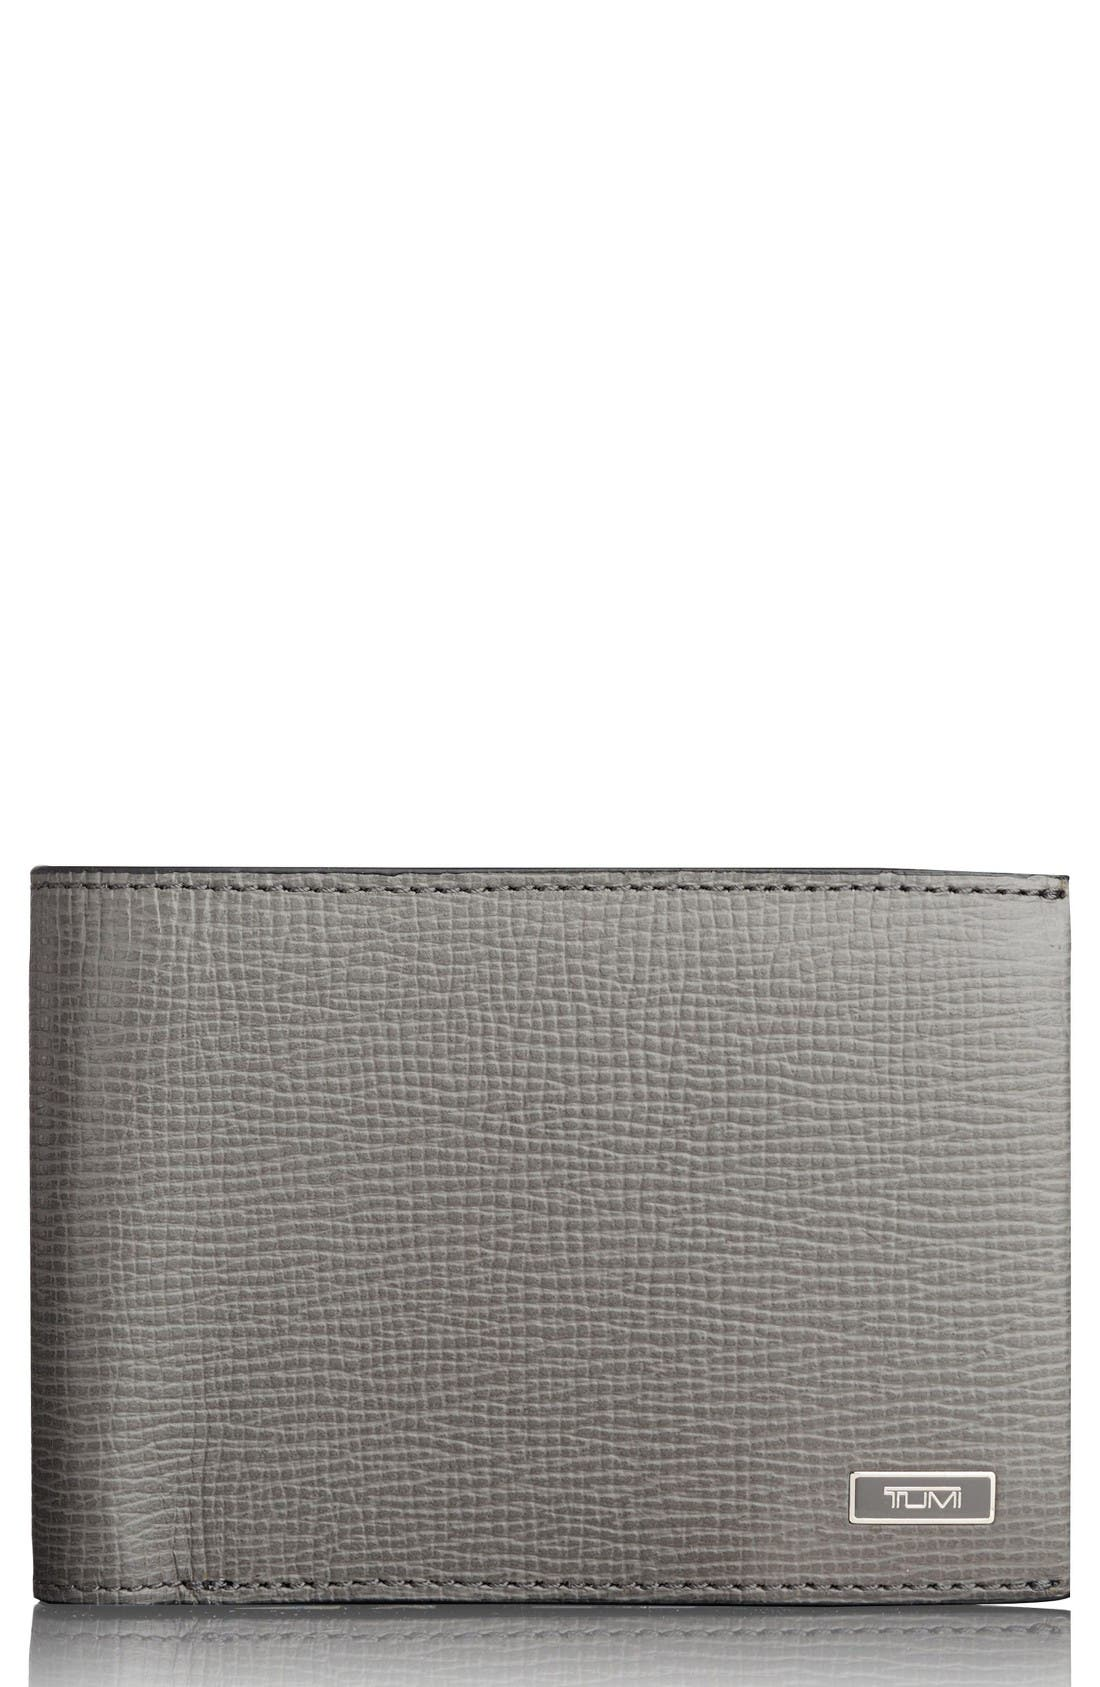 Alternate Image 1 Selected - Tumi Monaco Leather RFID Wallet